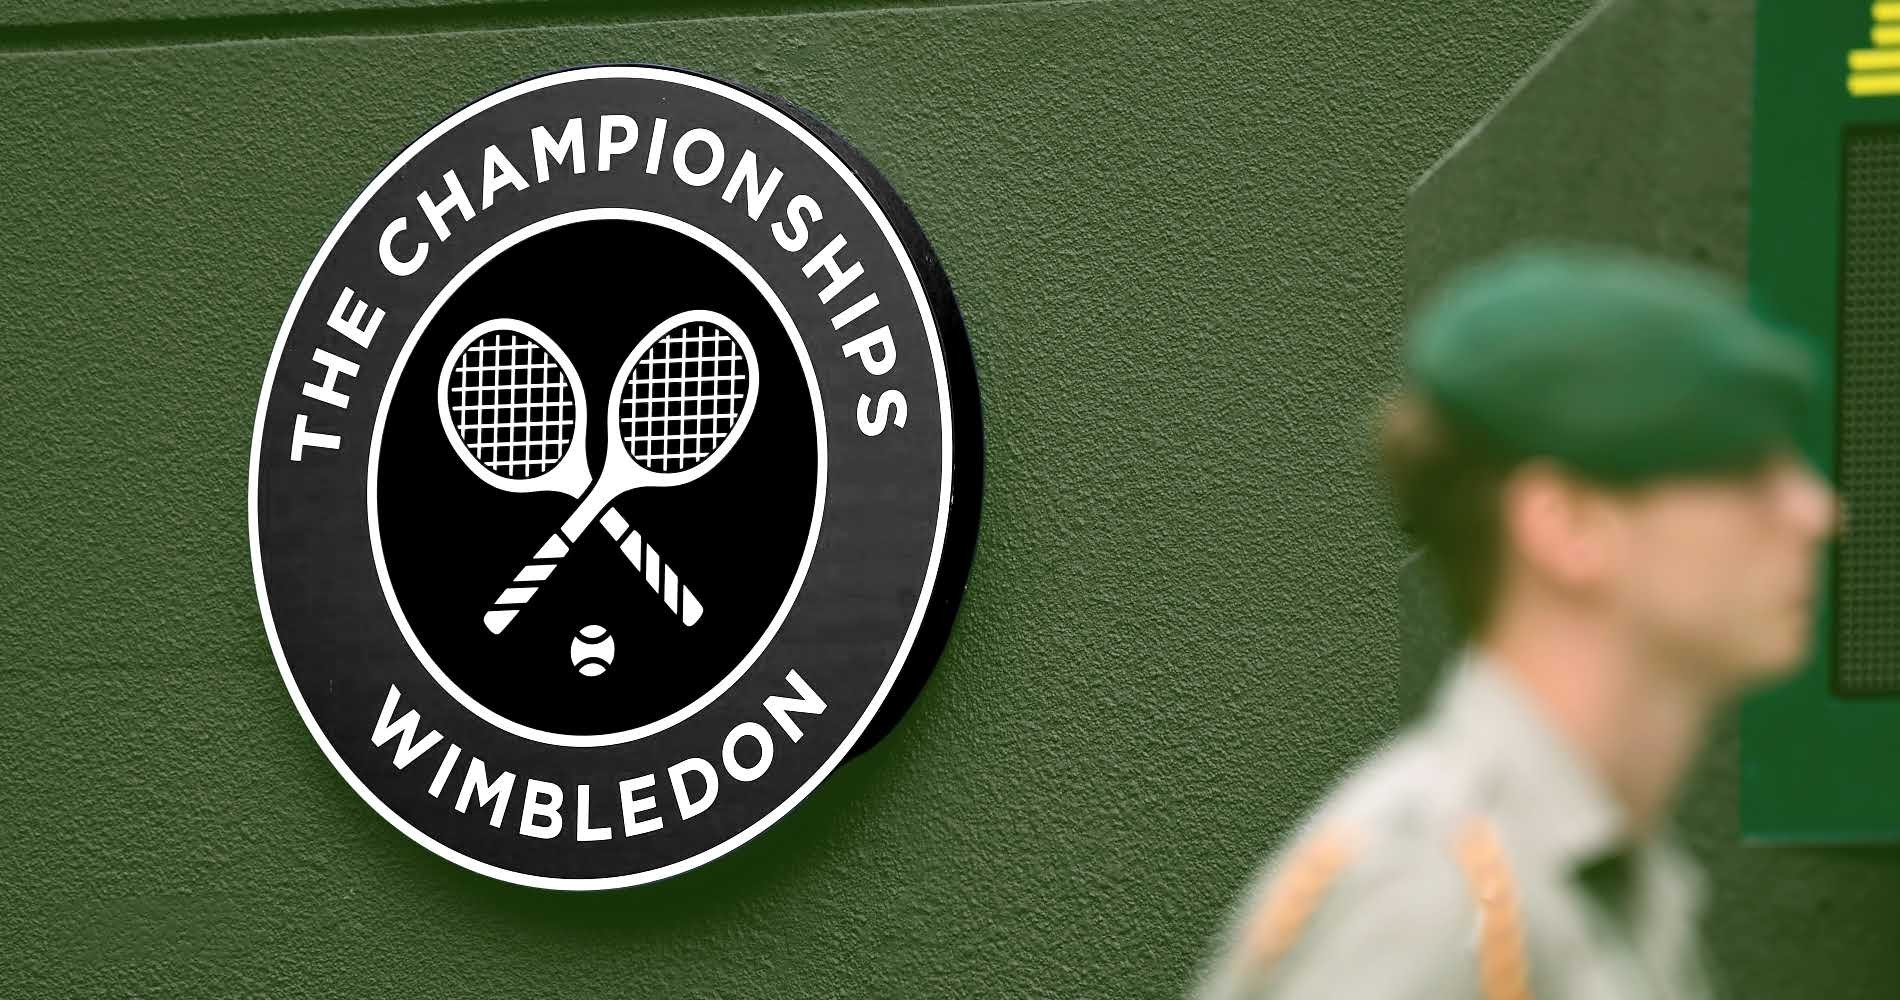 Wimbledon, On this day